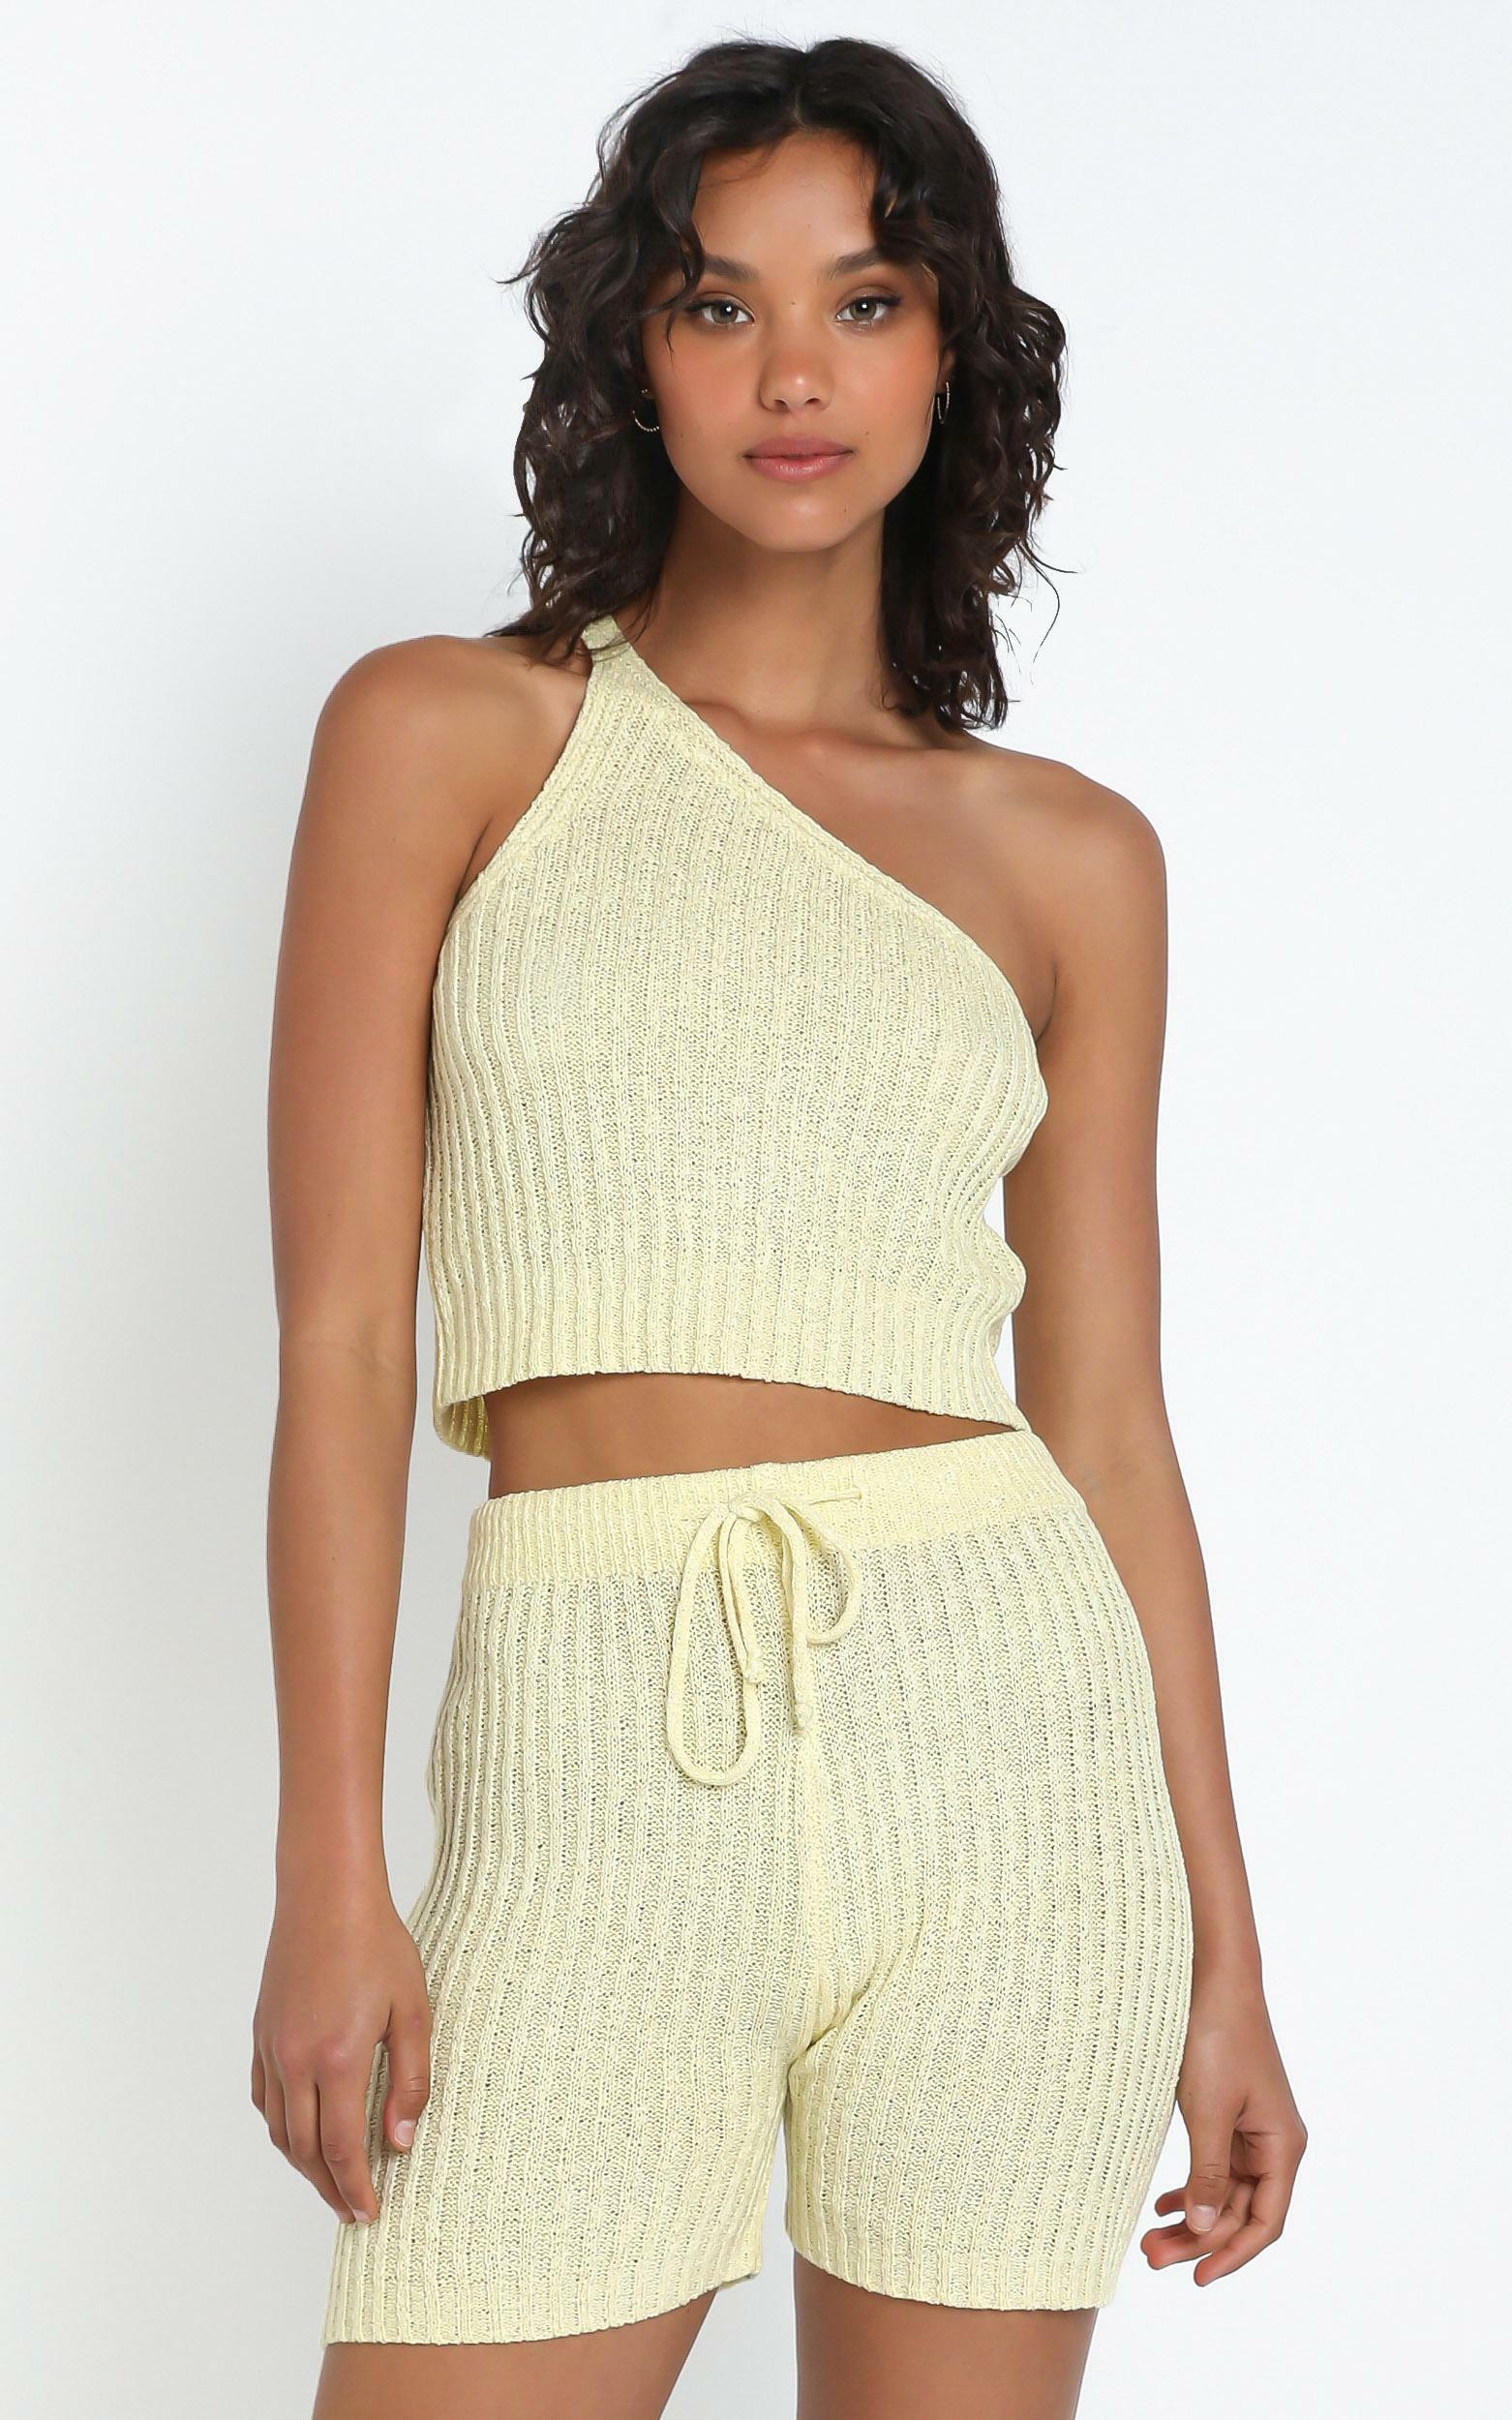 Kerry Knit Top in Yellow - L, Yellow, hi-res image number null